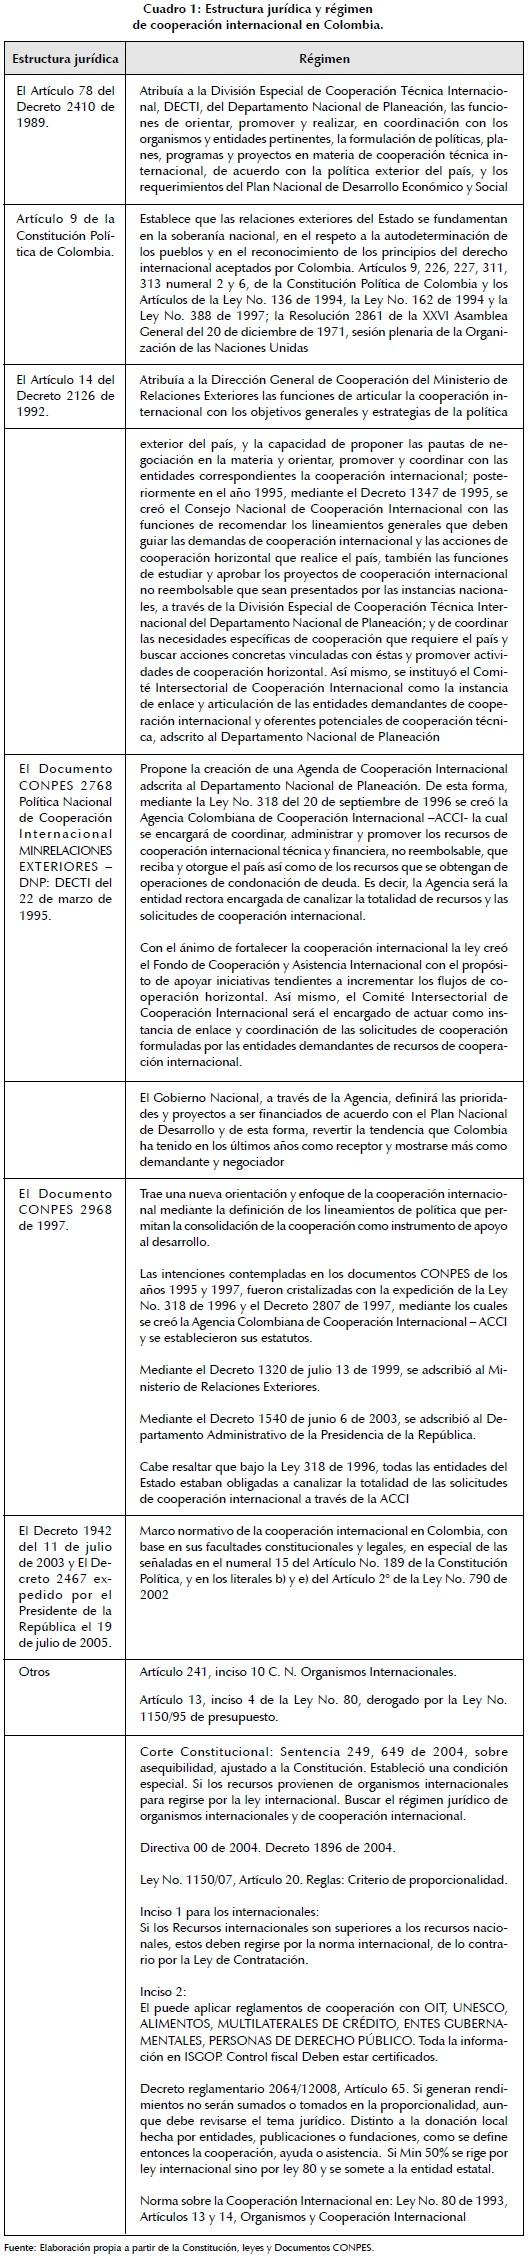 Bourges rencontres amicales